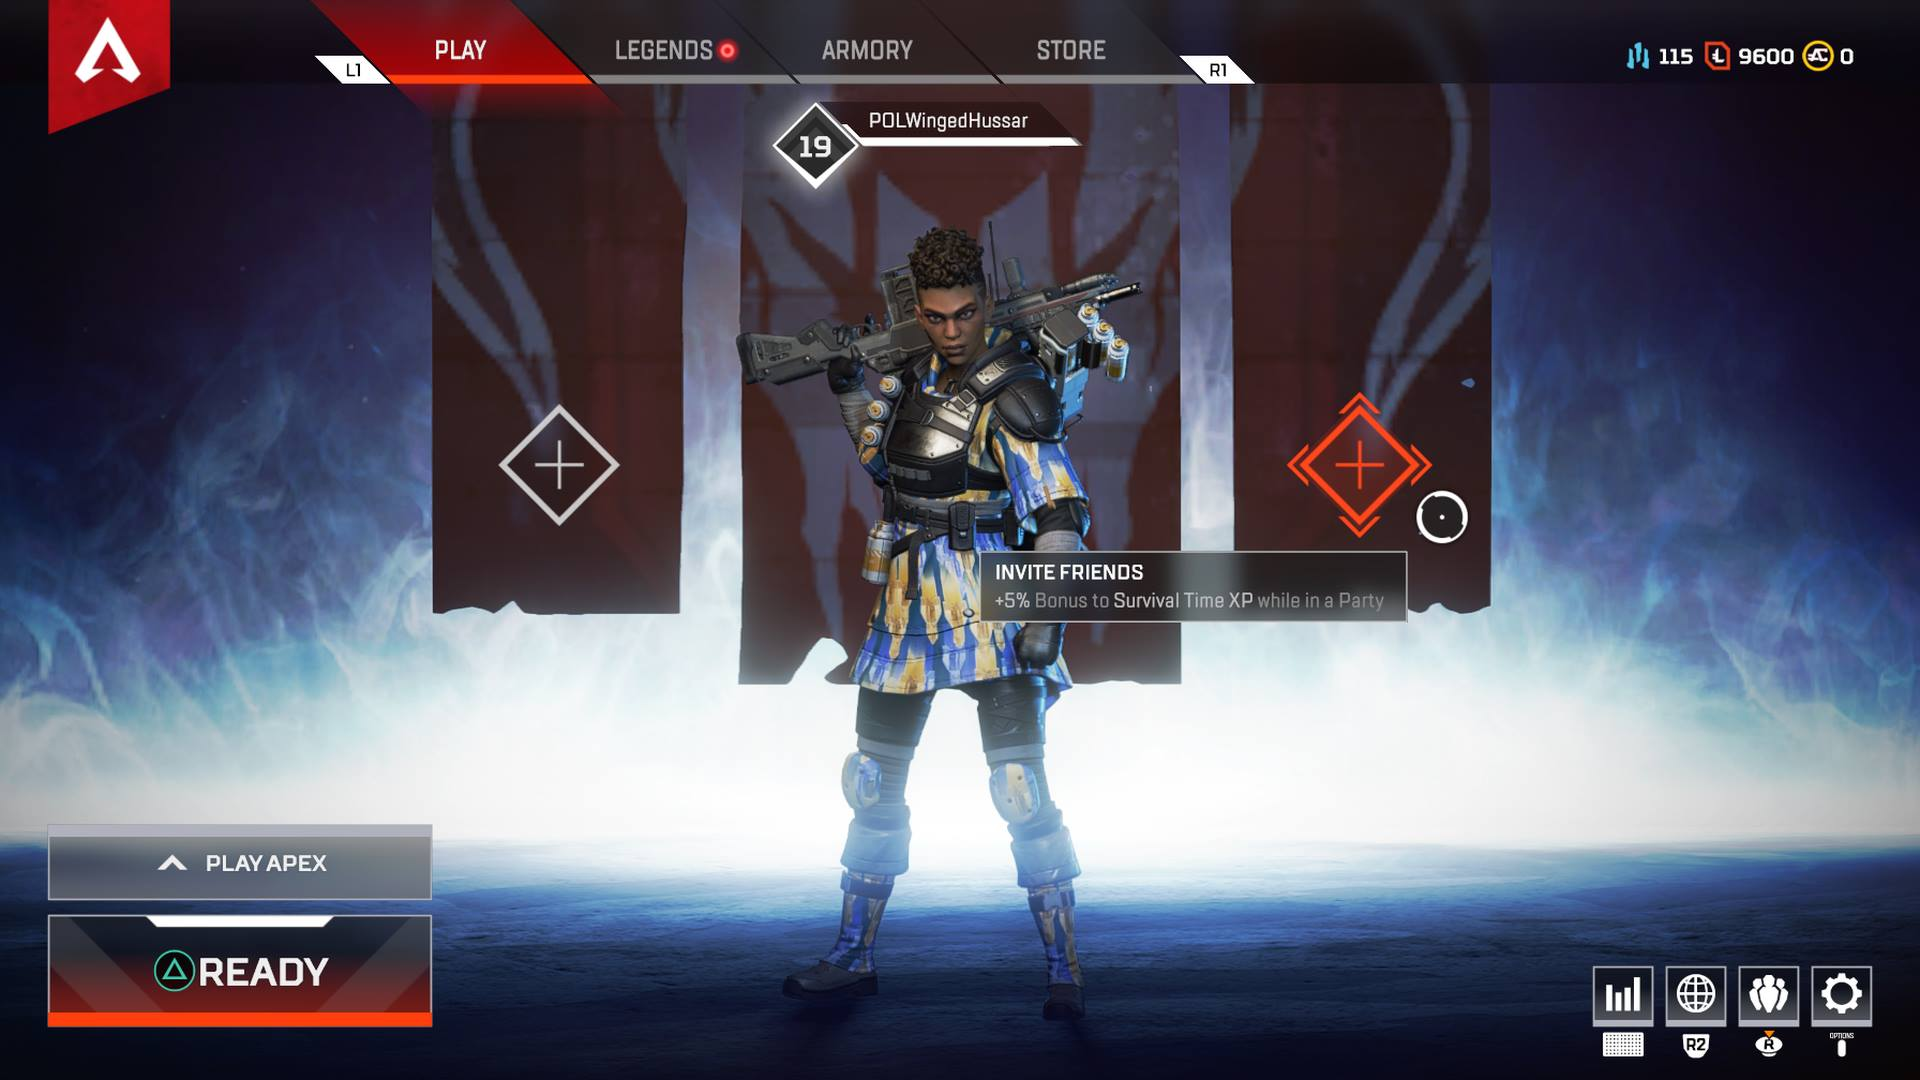 Playing in a party with your friends grants you a + 5 XP bonus to Survival Time XP in Apex Legends.